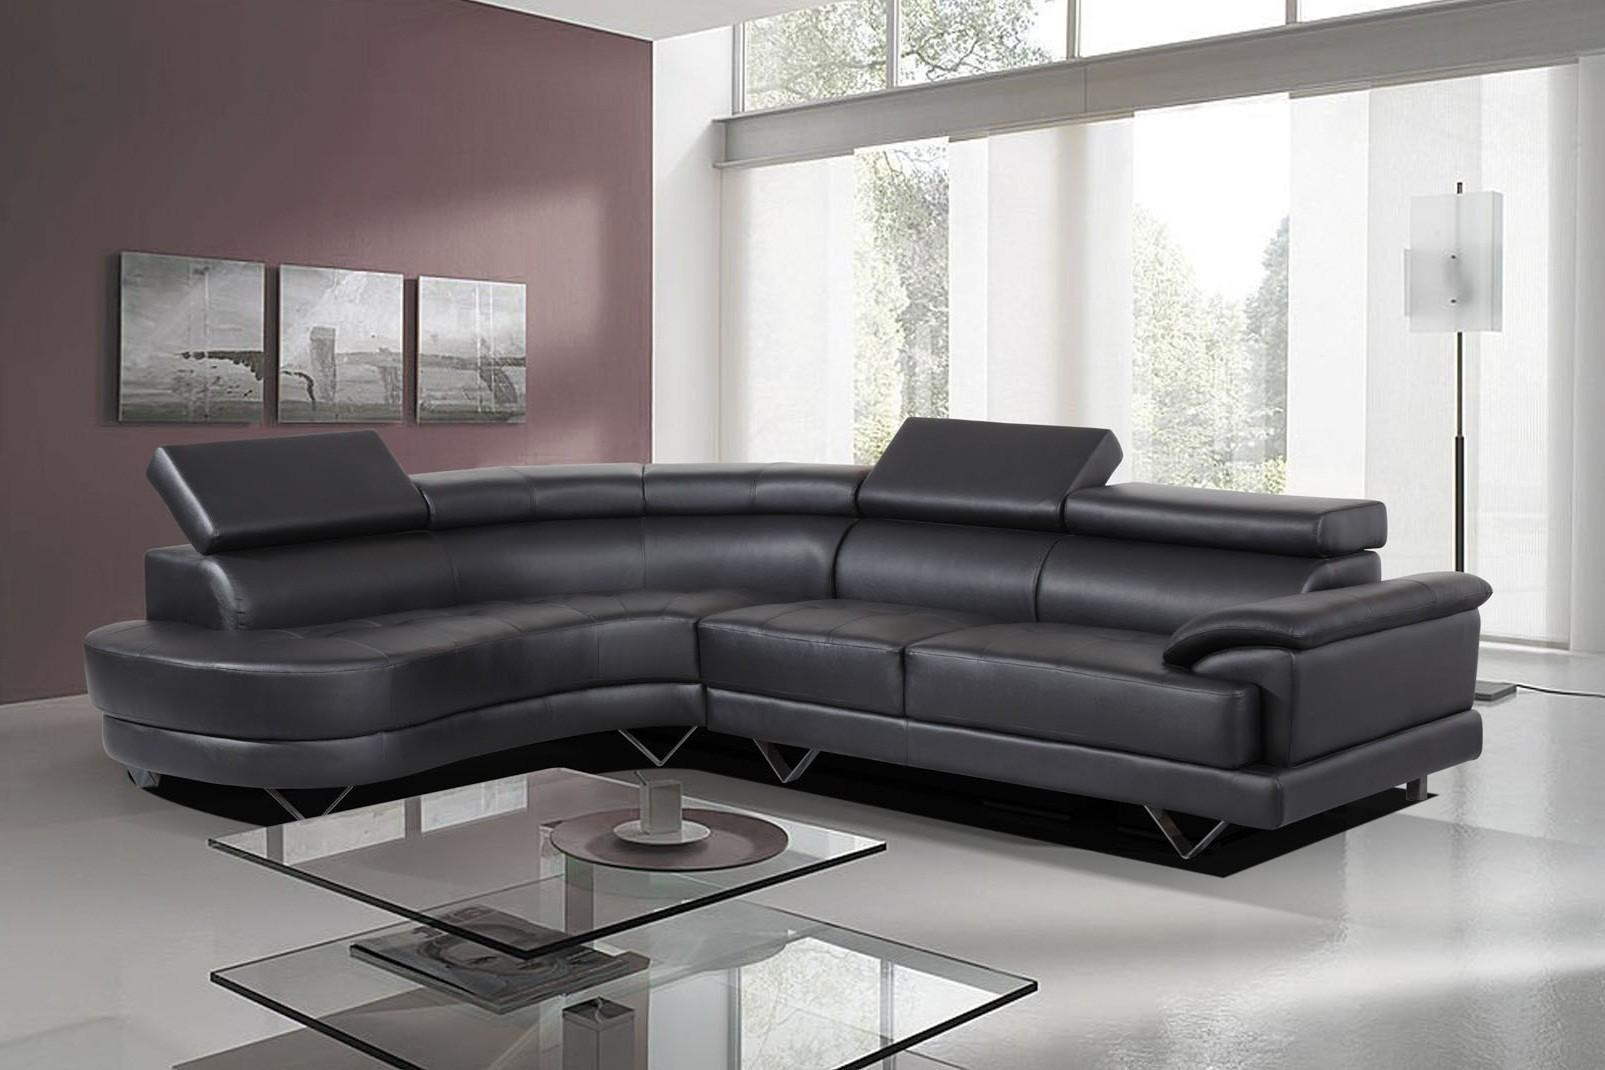 Leather Sofa At Isofas | Latest Designer Leather Sofas Throughout Corner Sofa Leather (View 7 of 20)